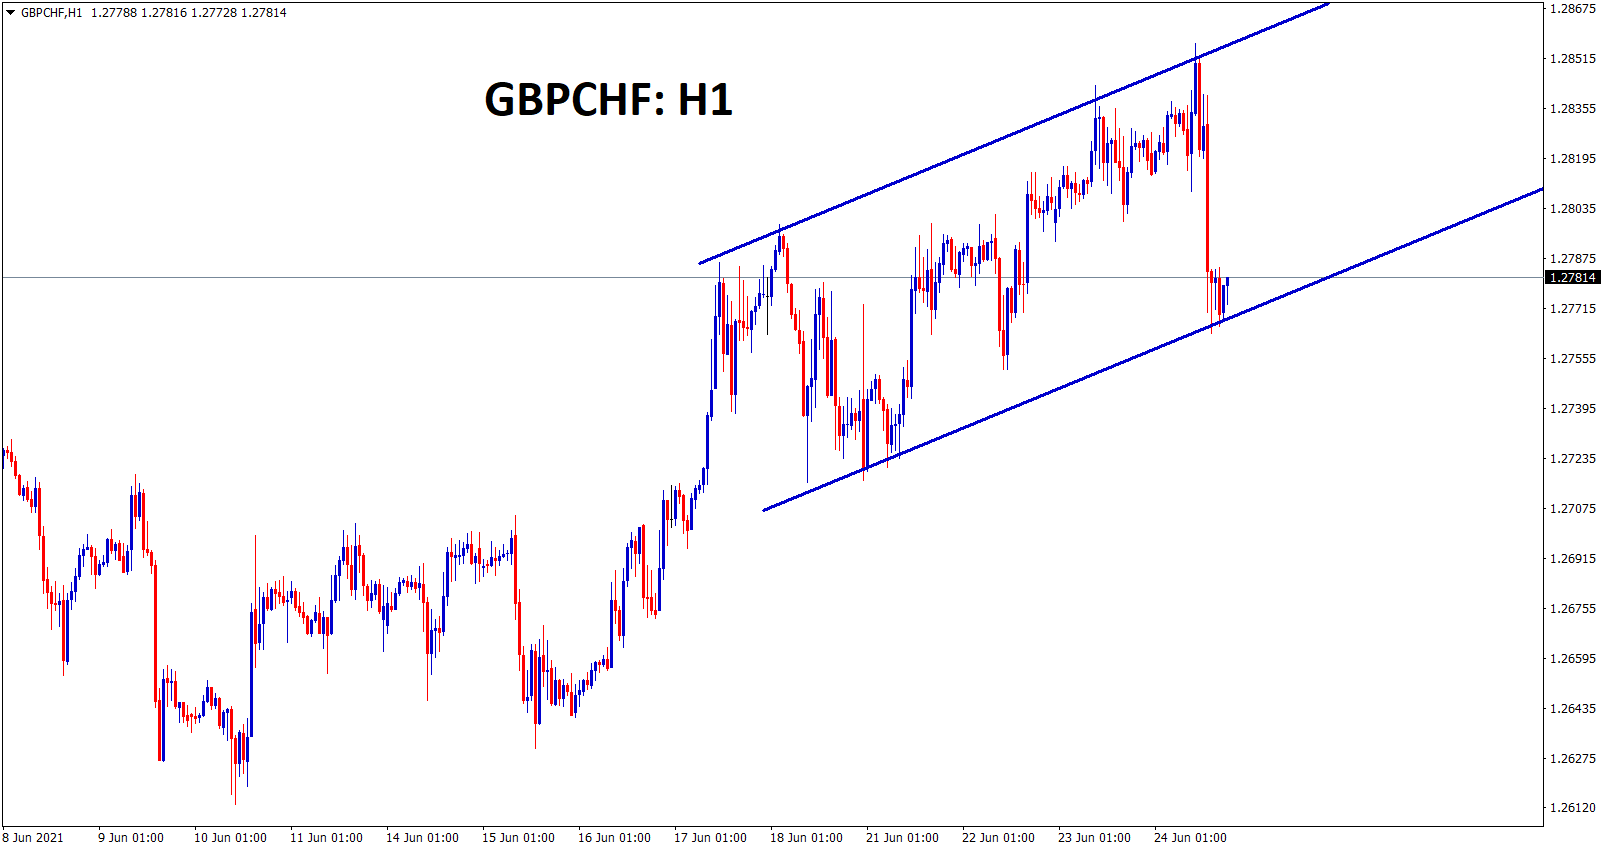 GBPCHF is moving in an Ascending channel range forming higher highs and higher lows